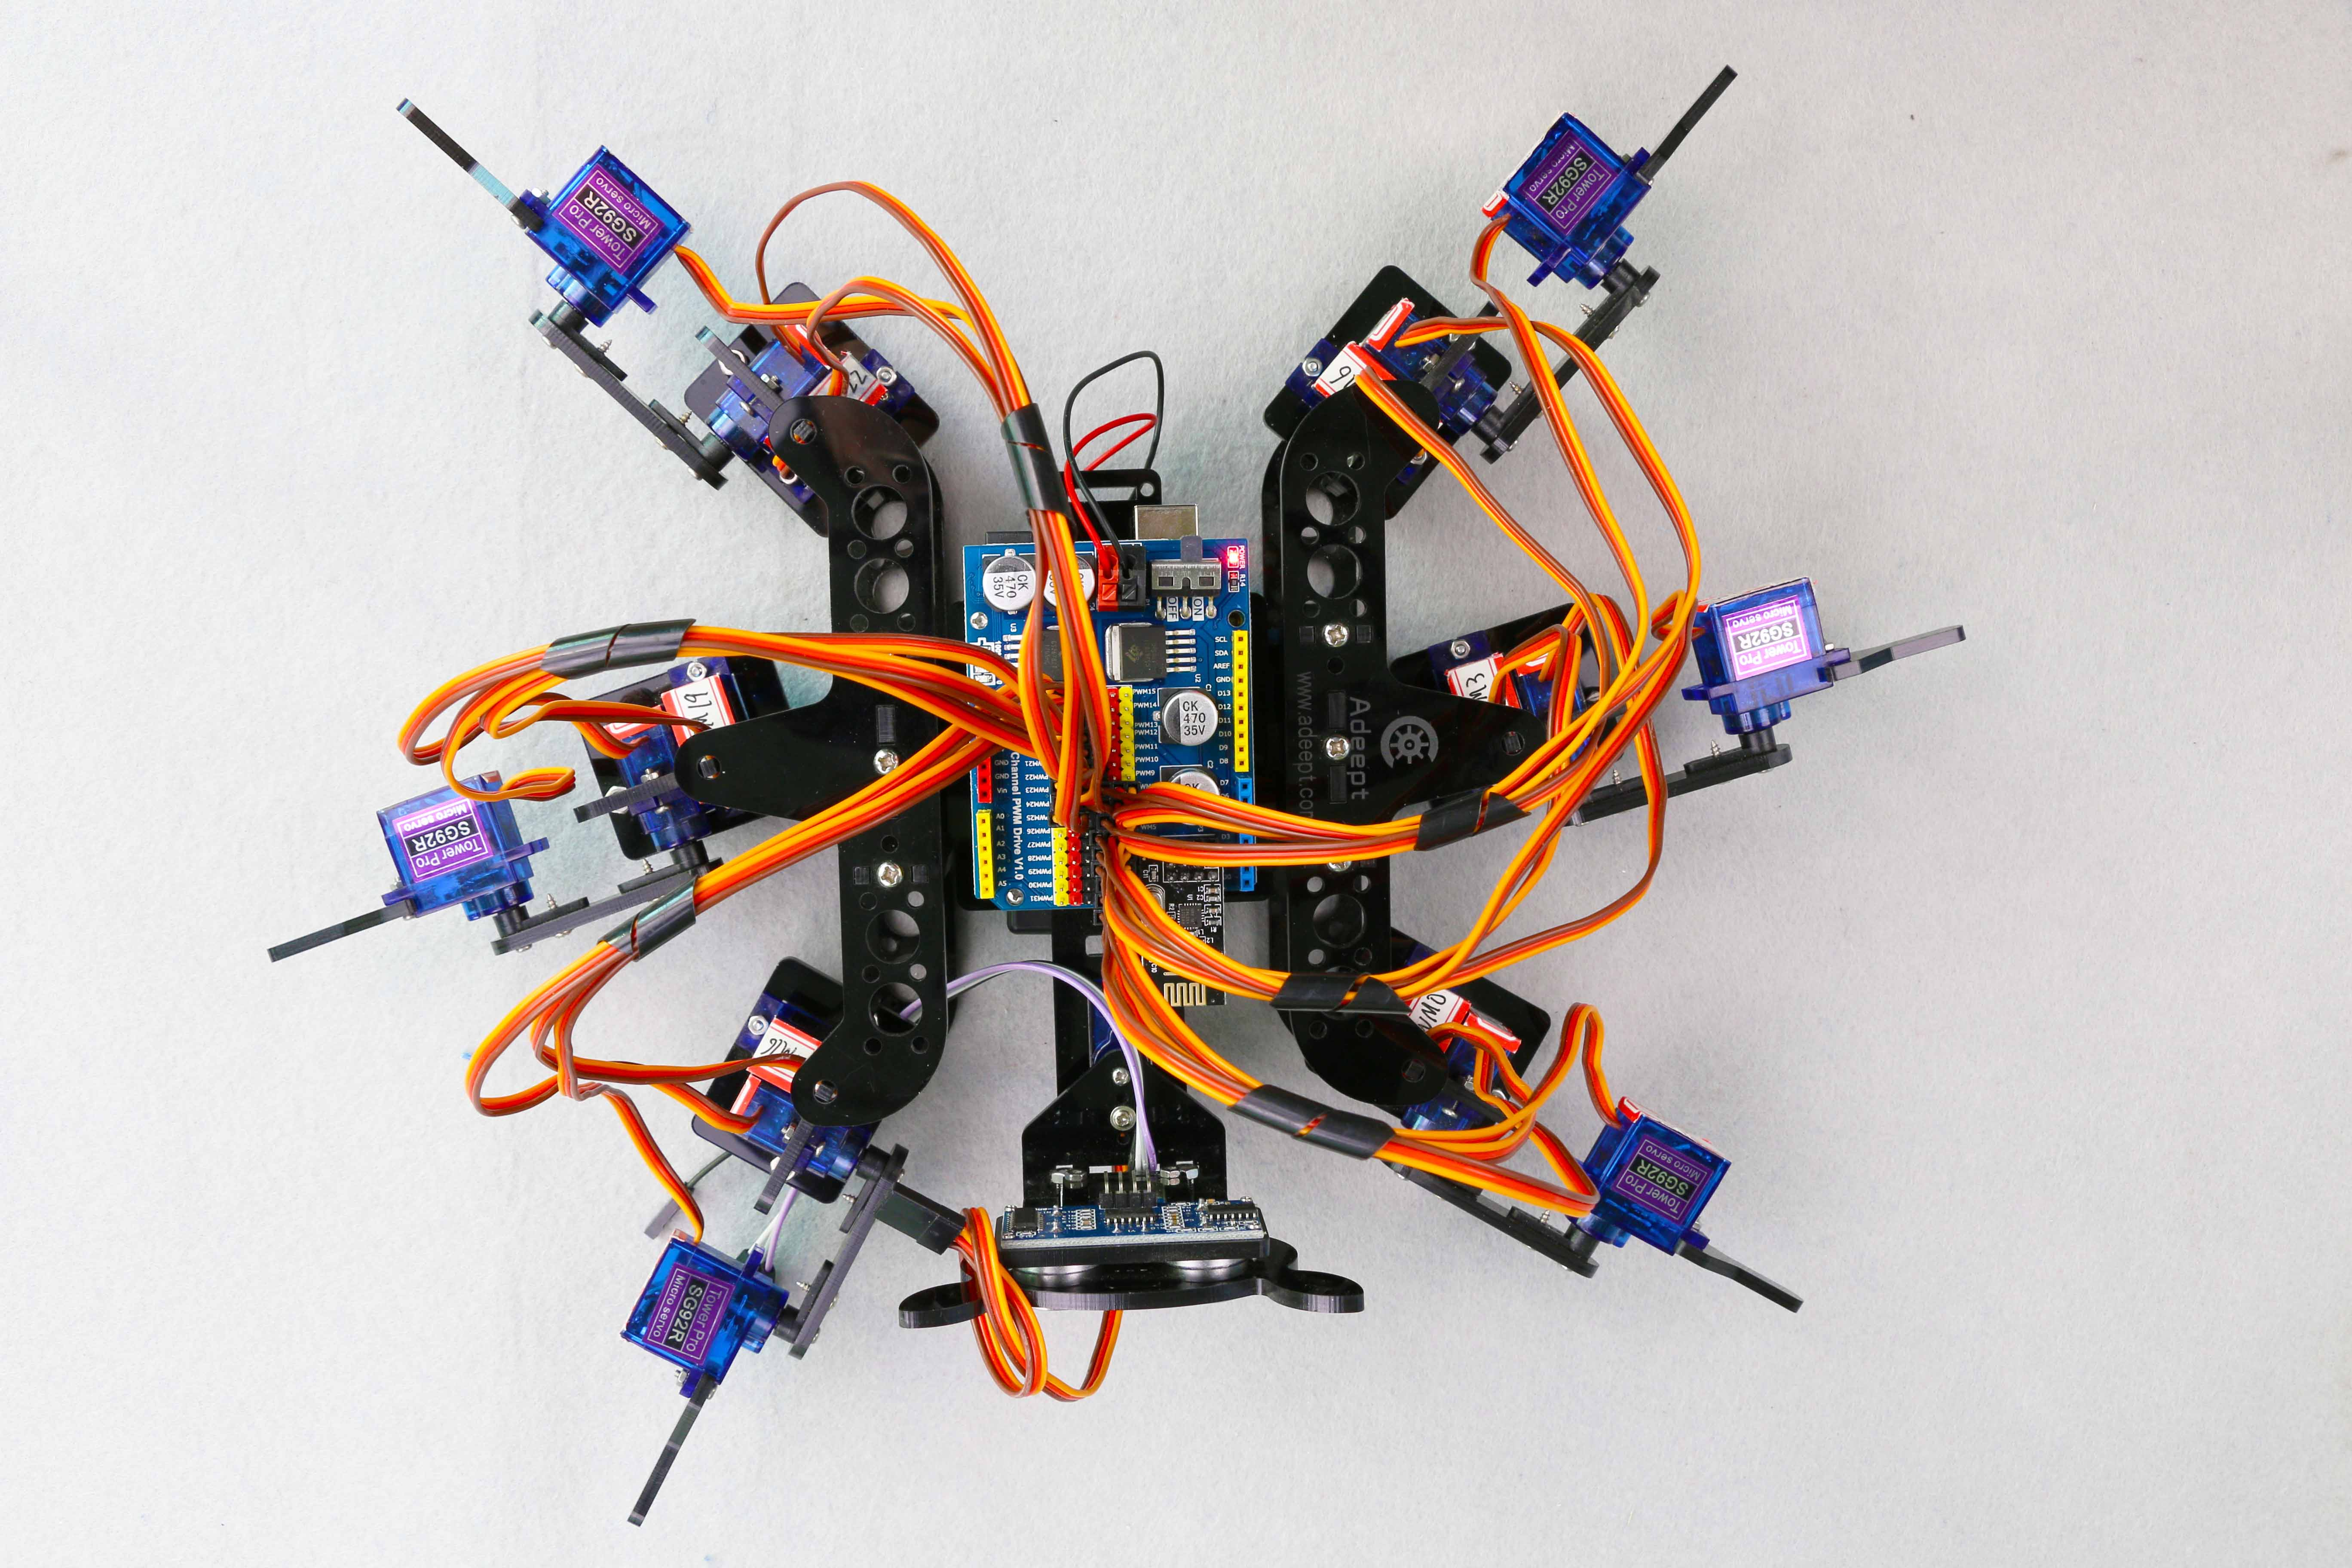 Spider Robot Encountered A Problem Summary Wire Harness Schematic Zumo 665 As Shown Belowdetect Whether There Is Smoke On The Circuit Board And Check Battery Cable Hot Or Not